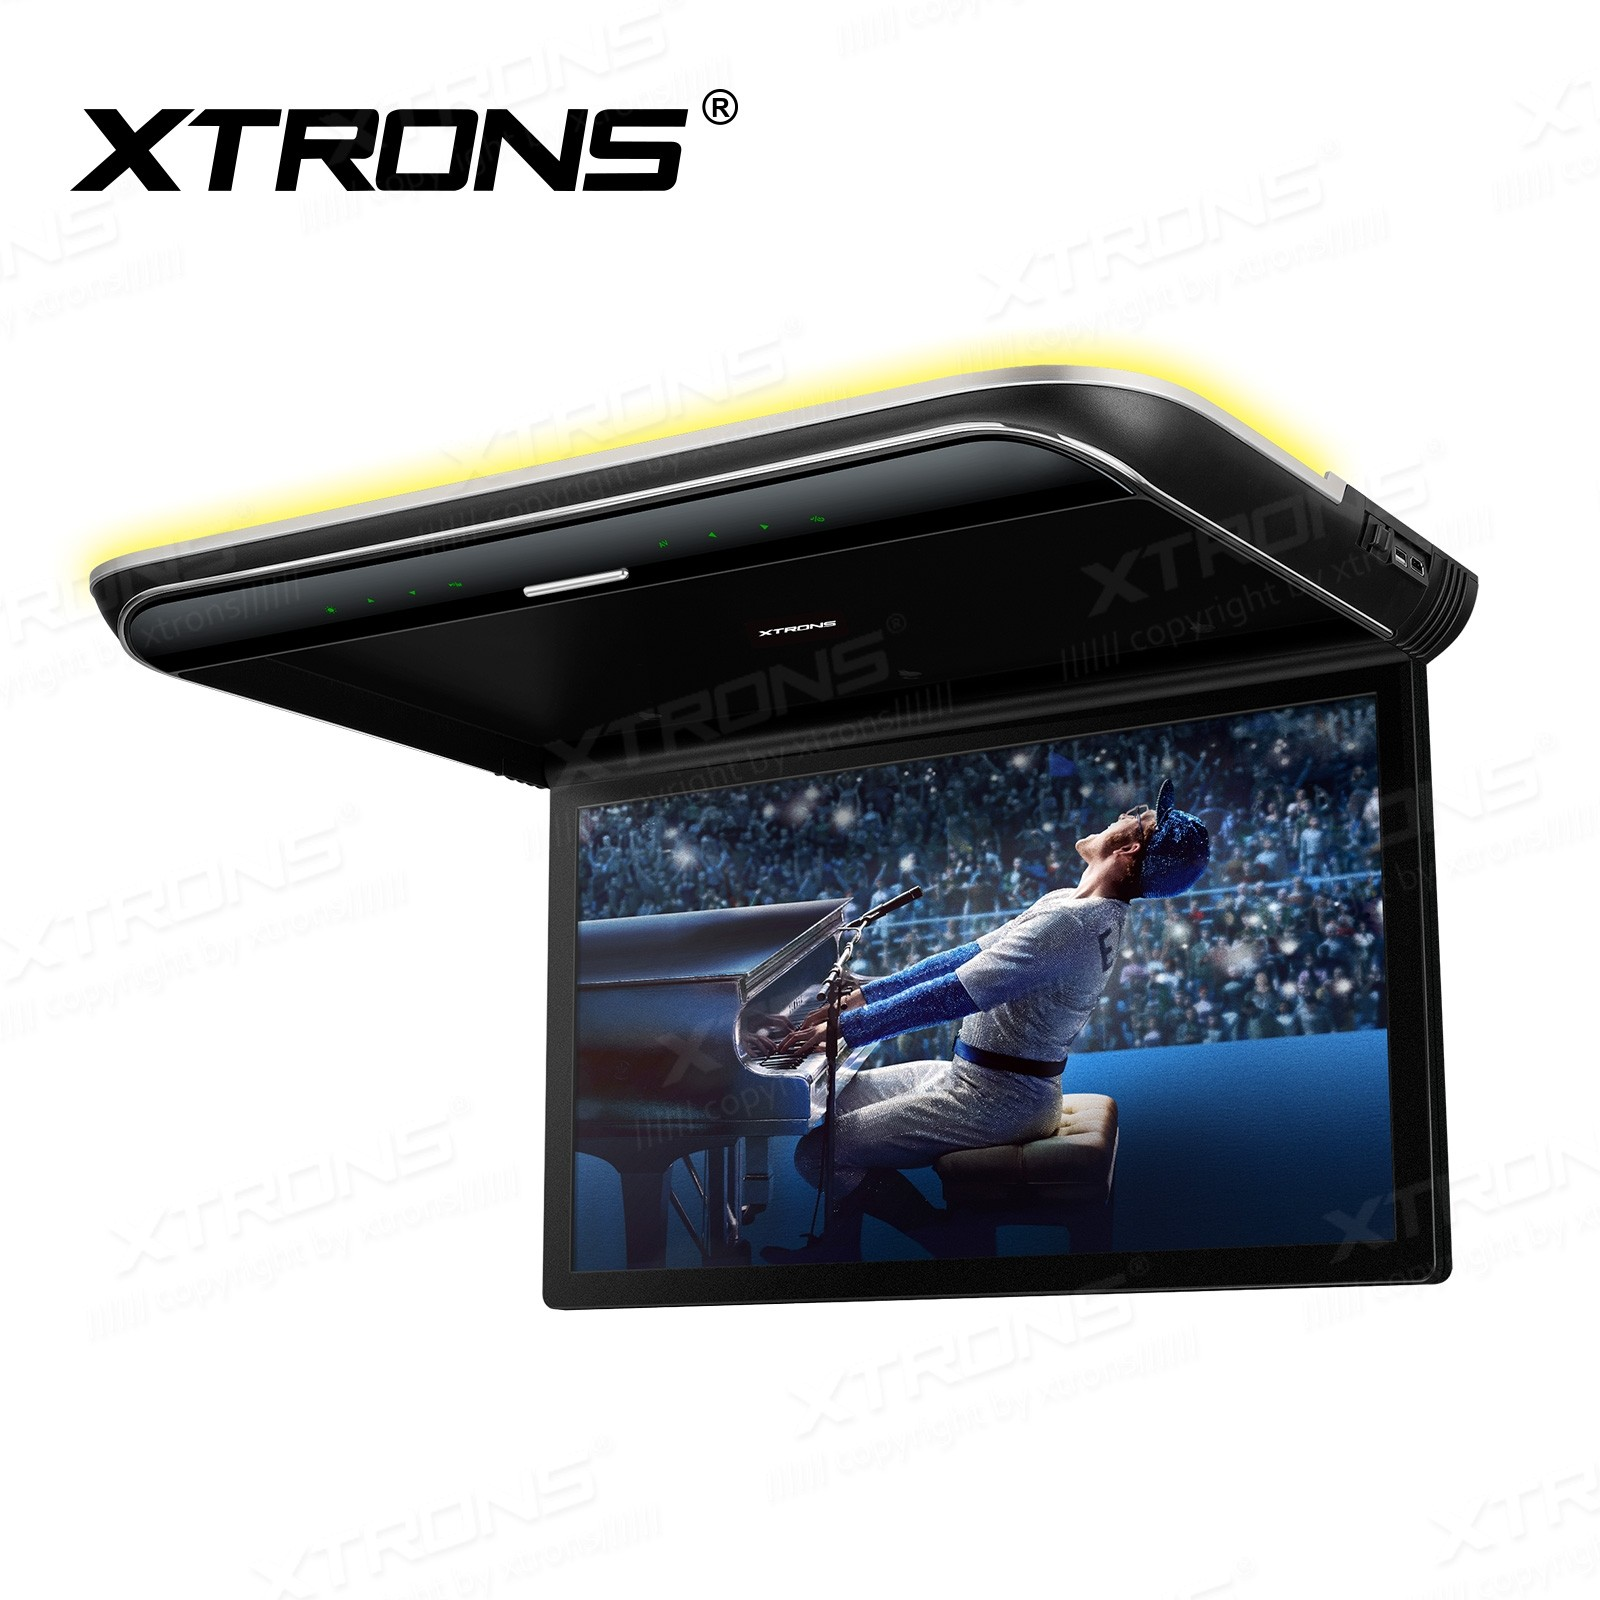 19.5 inch HD Digital TFT 16:9 Screen Ultra-thin Roof Mounted Player with Built-in Speakers and Colourful Aura Light